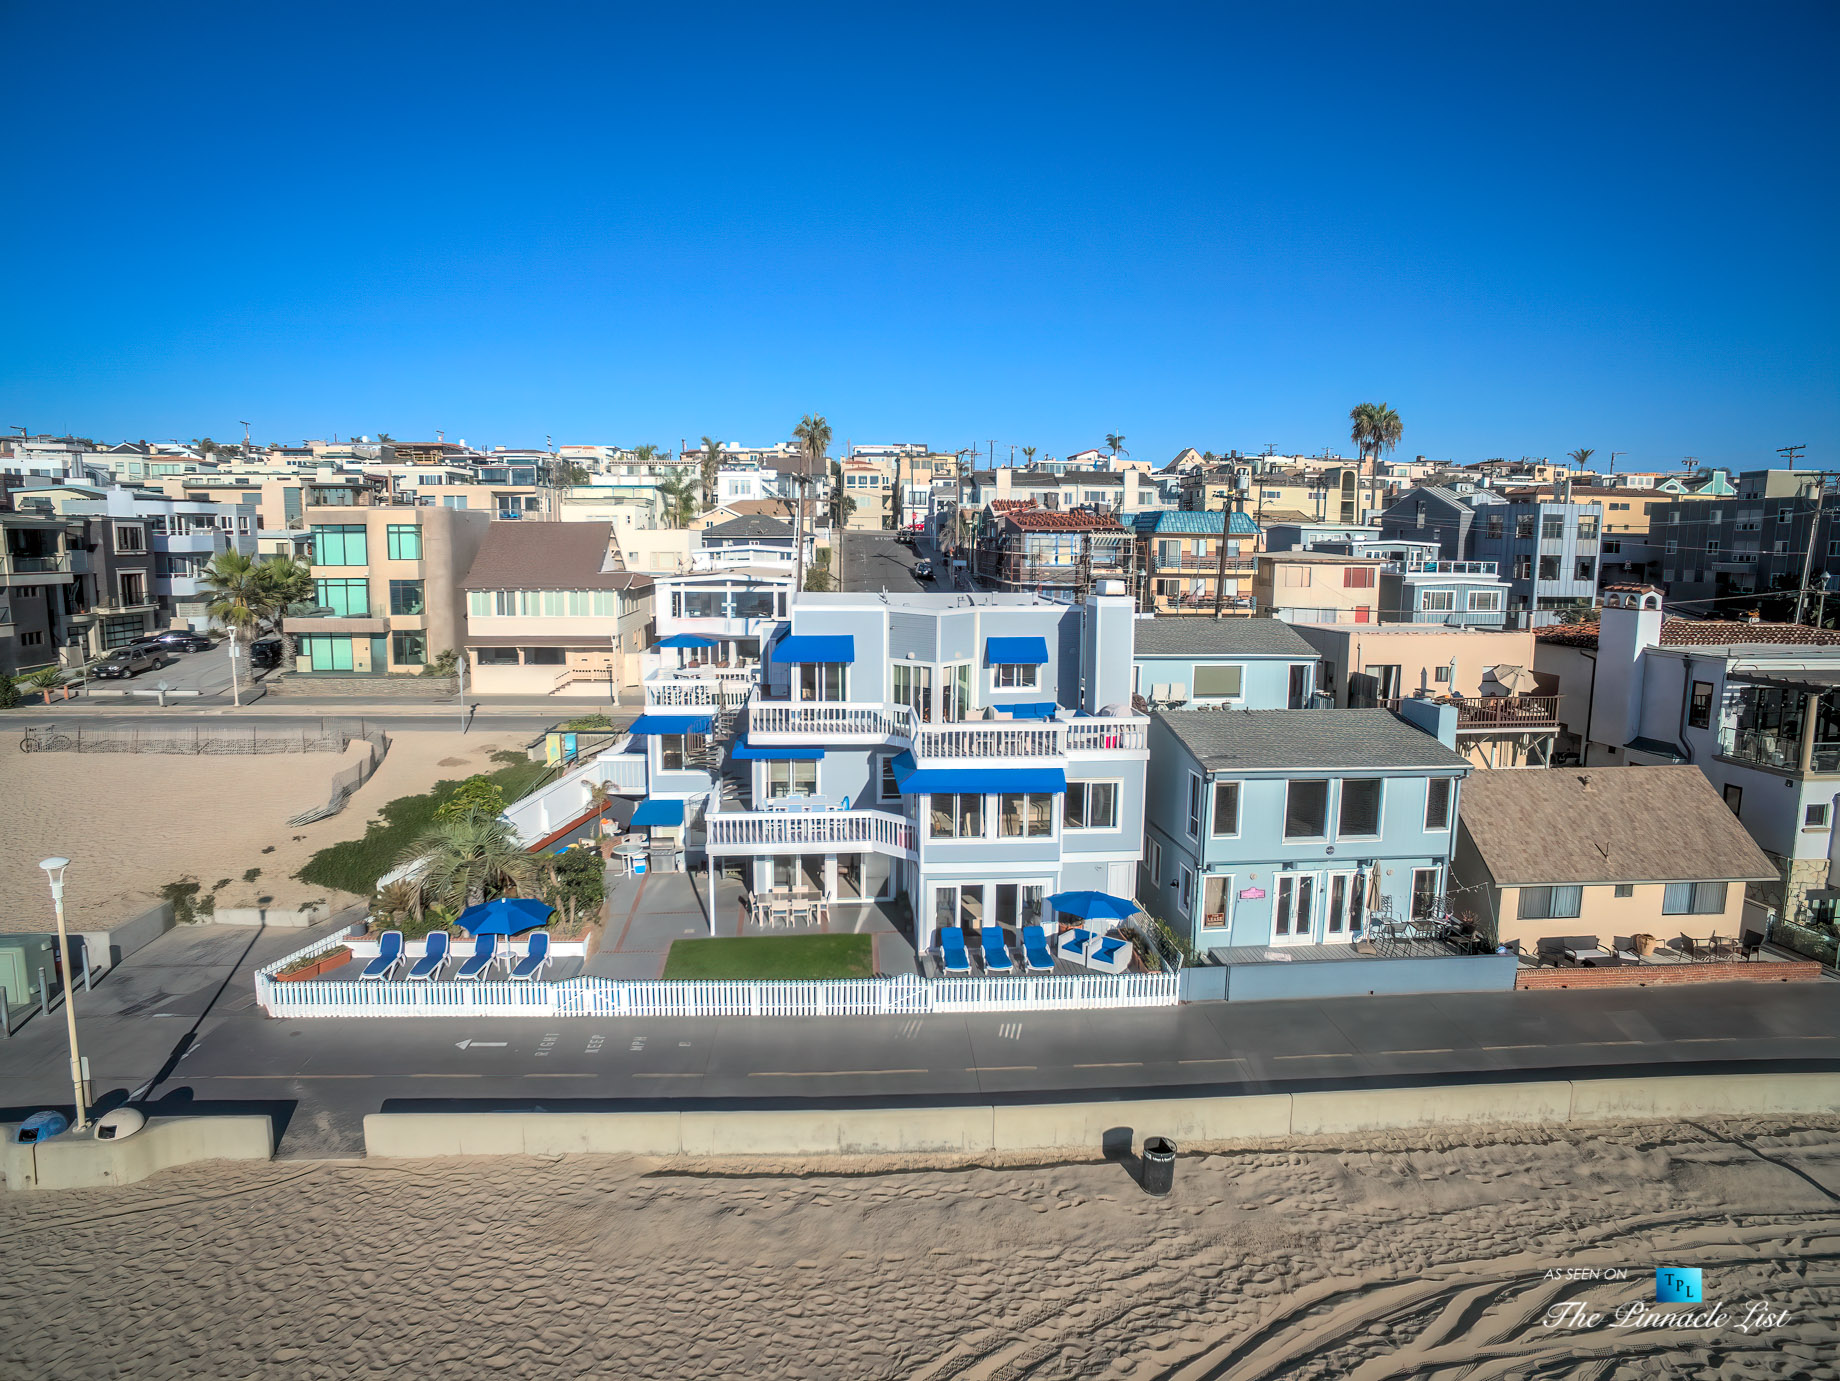 3500 The Strand, Hermosa Beach, CA, USA – Drone Aerial Front Home View – Luxury Real Estate – Original 90210 Beach House